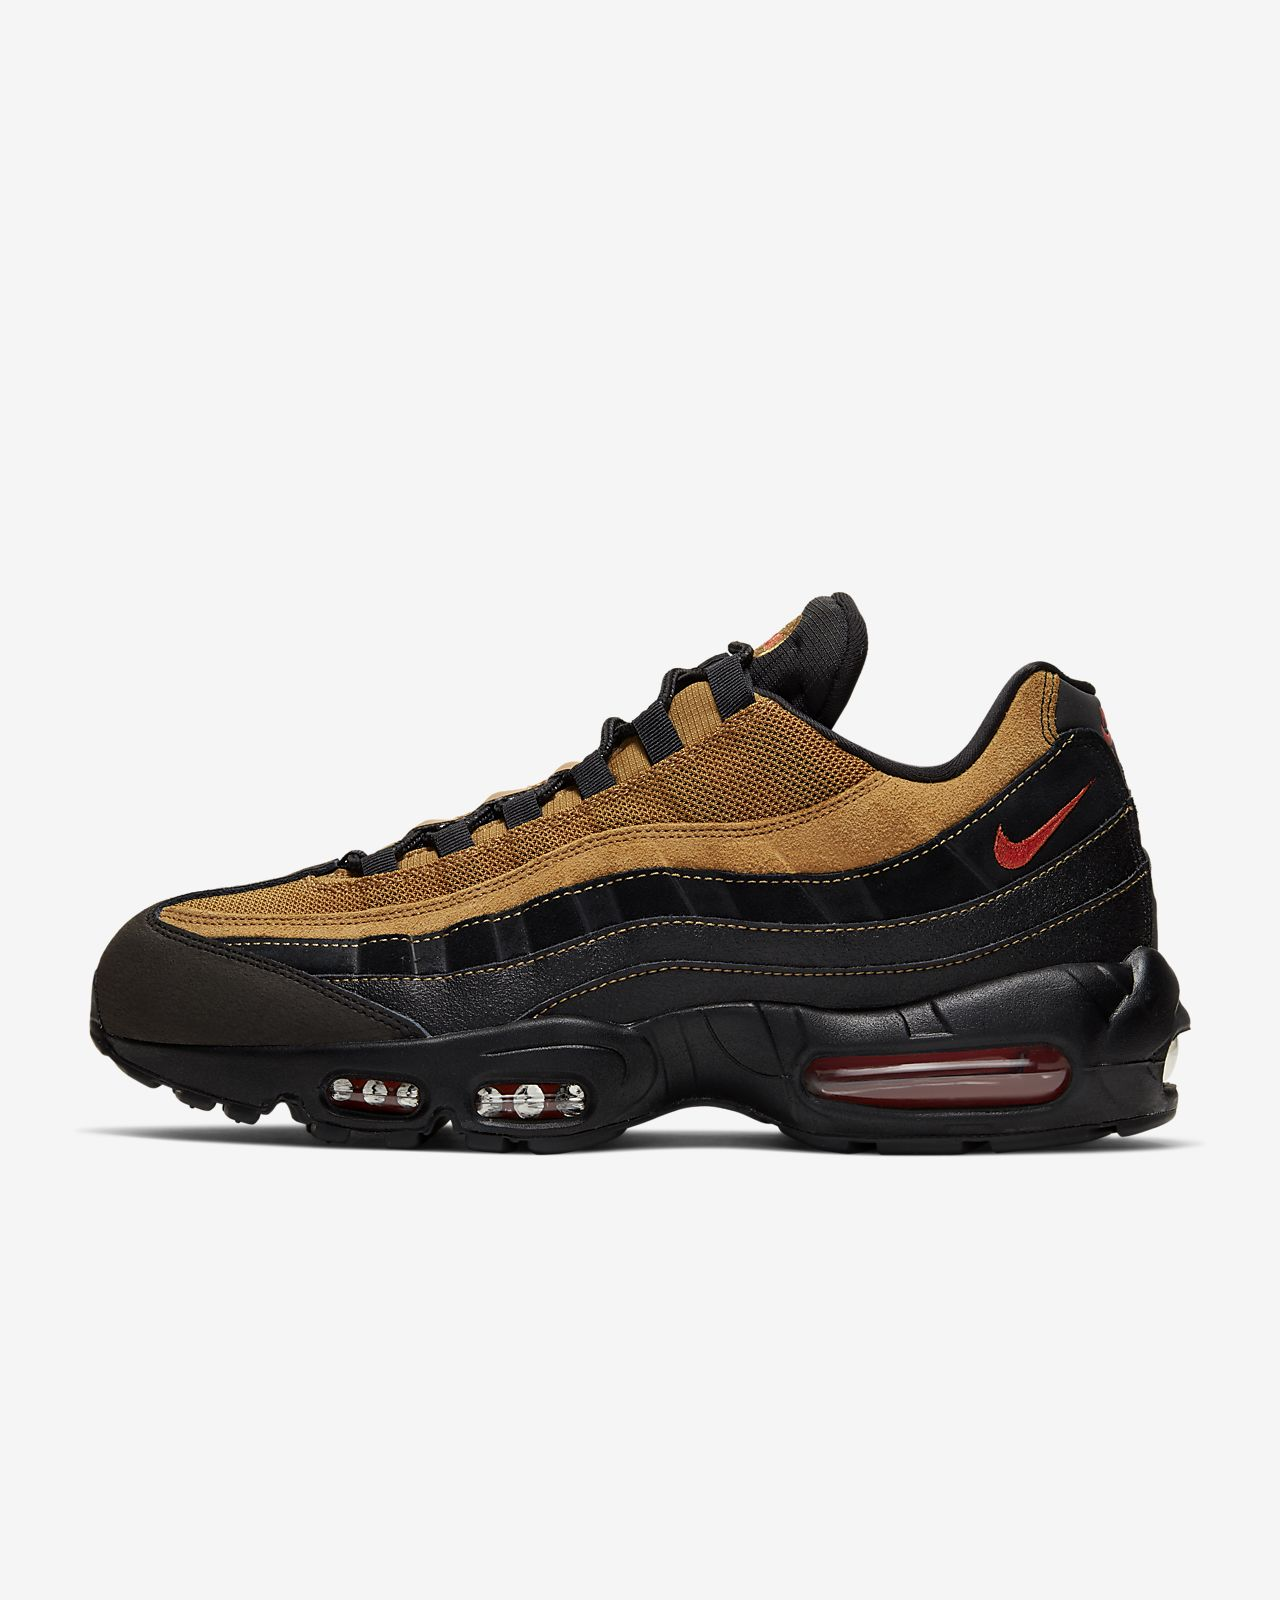 Nike Air Max 95 Essential Unisex Shoe